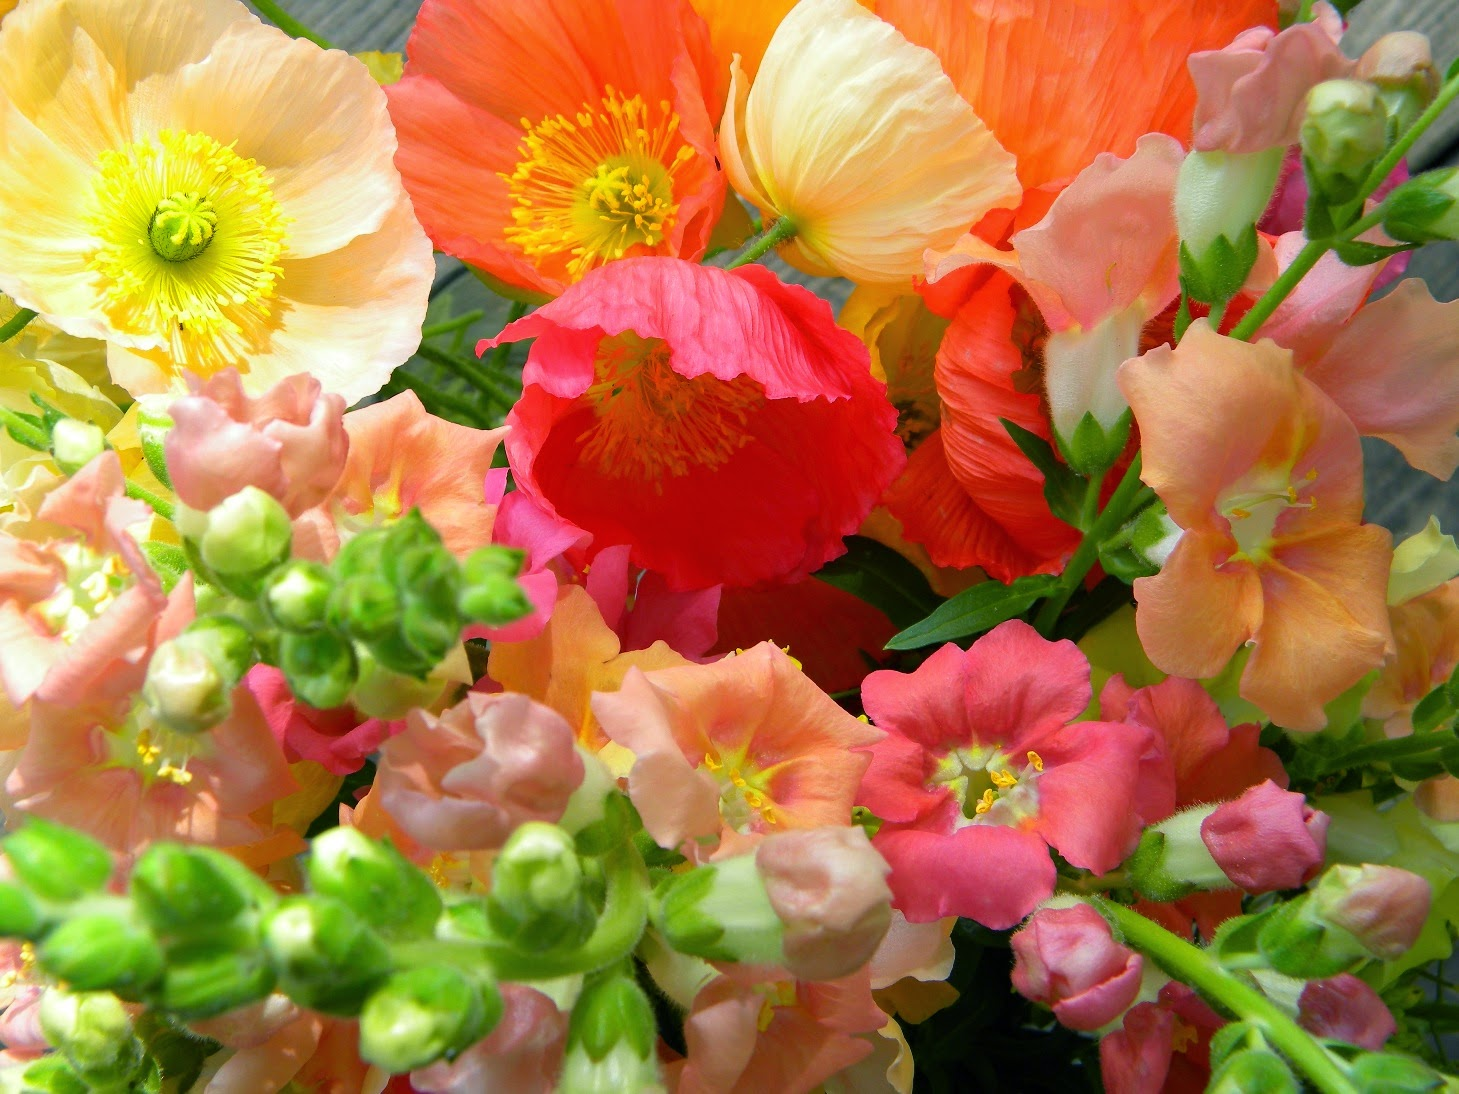 Wedding Flowers from Springwell: Peach and Coral Garden Roses and ...